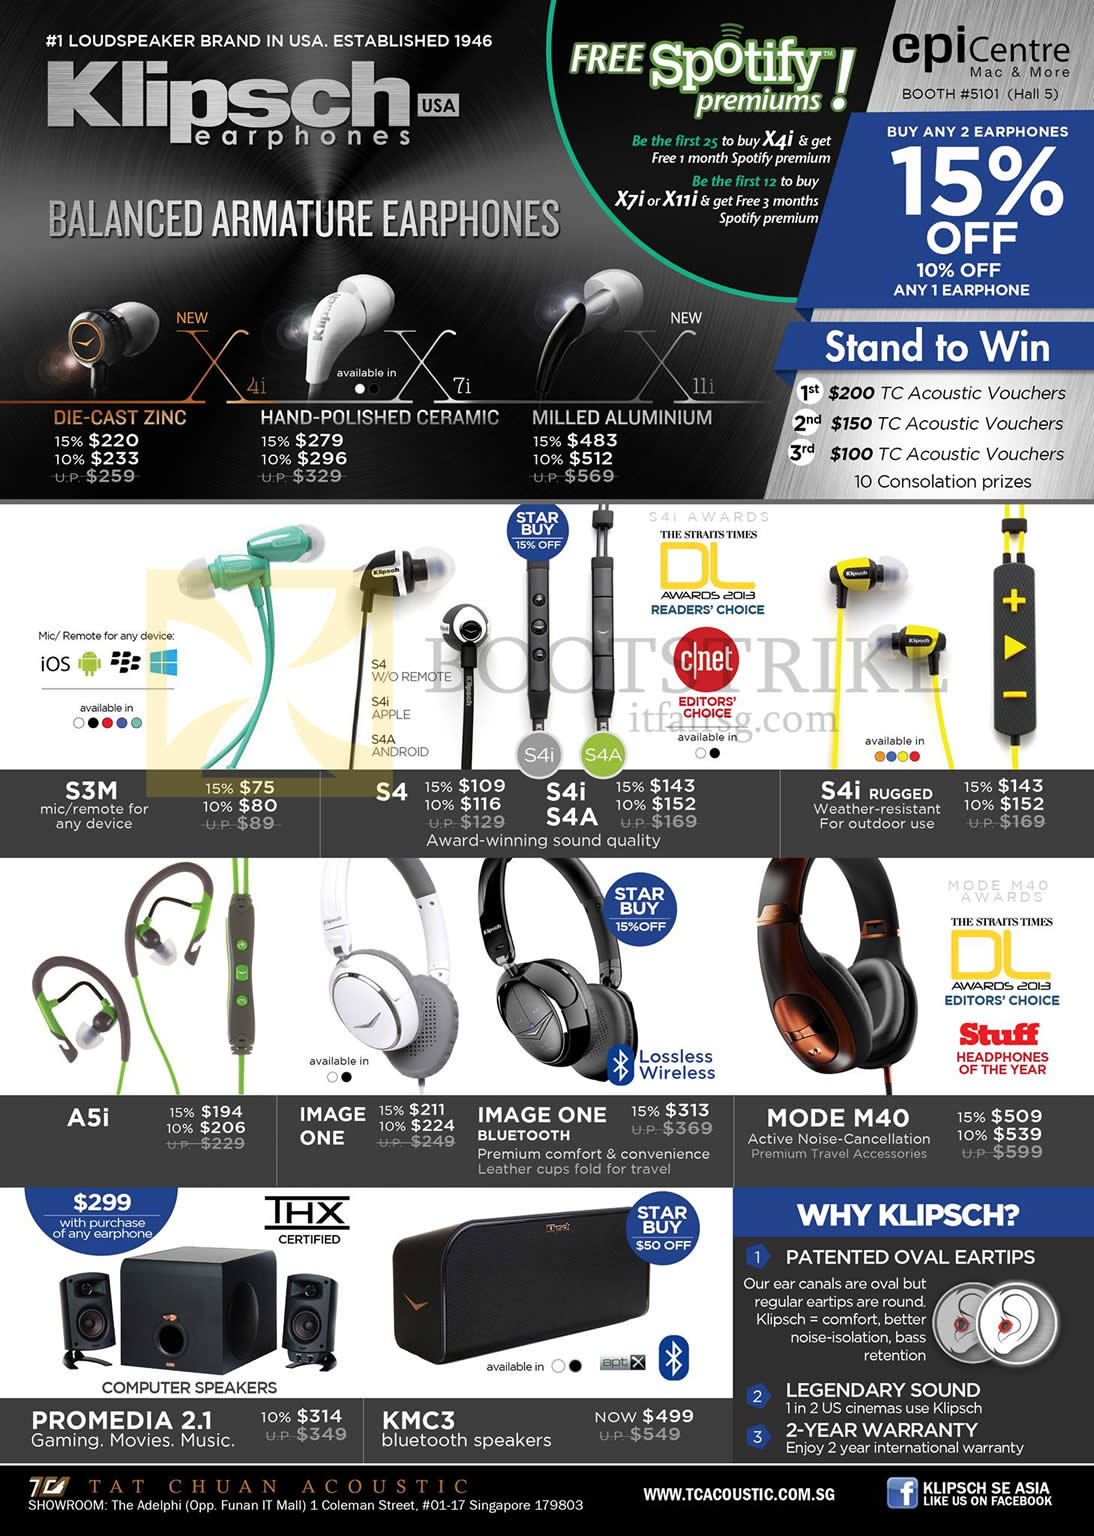 COMEX 2013 price list image brochure of Epicentre Klipsch Earphones X4i, X7i, 11i, S3M, S4, S4i, S4a, A5i, Image One, Mode M40 Headphones, Promedia 2.1 Speakers, KMC3